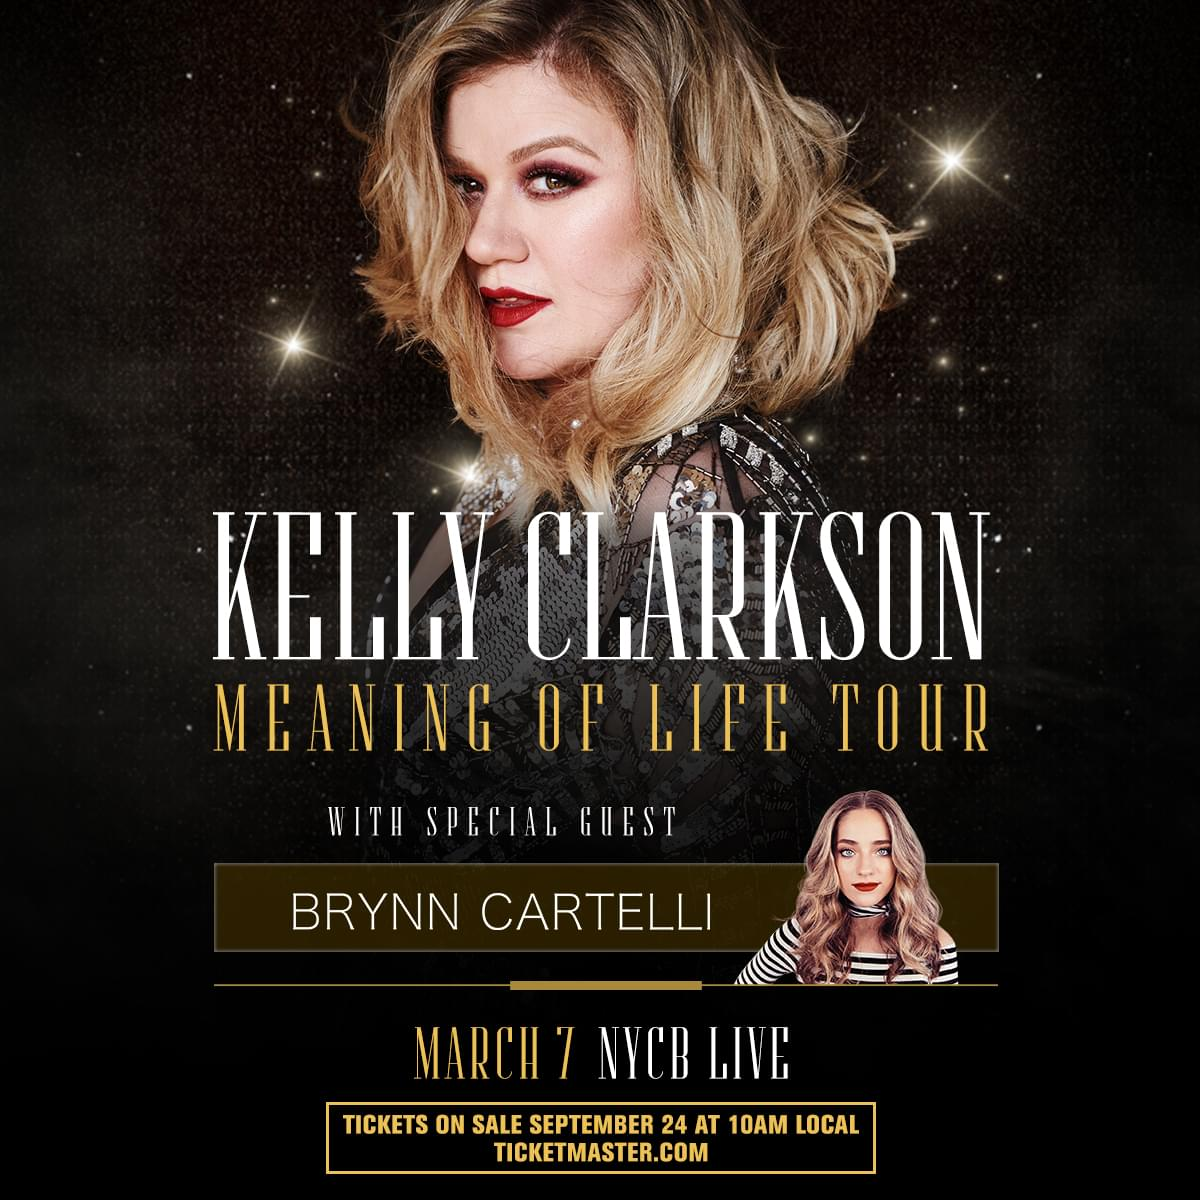 Win Tickets to See Kelly Clarkson!